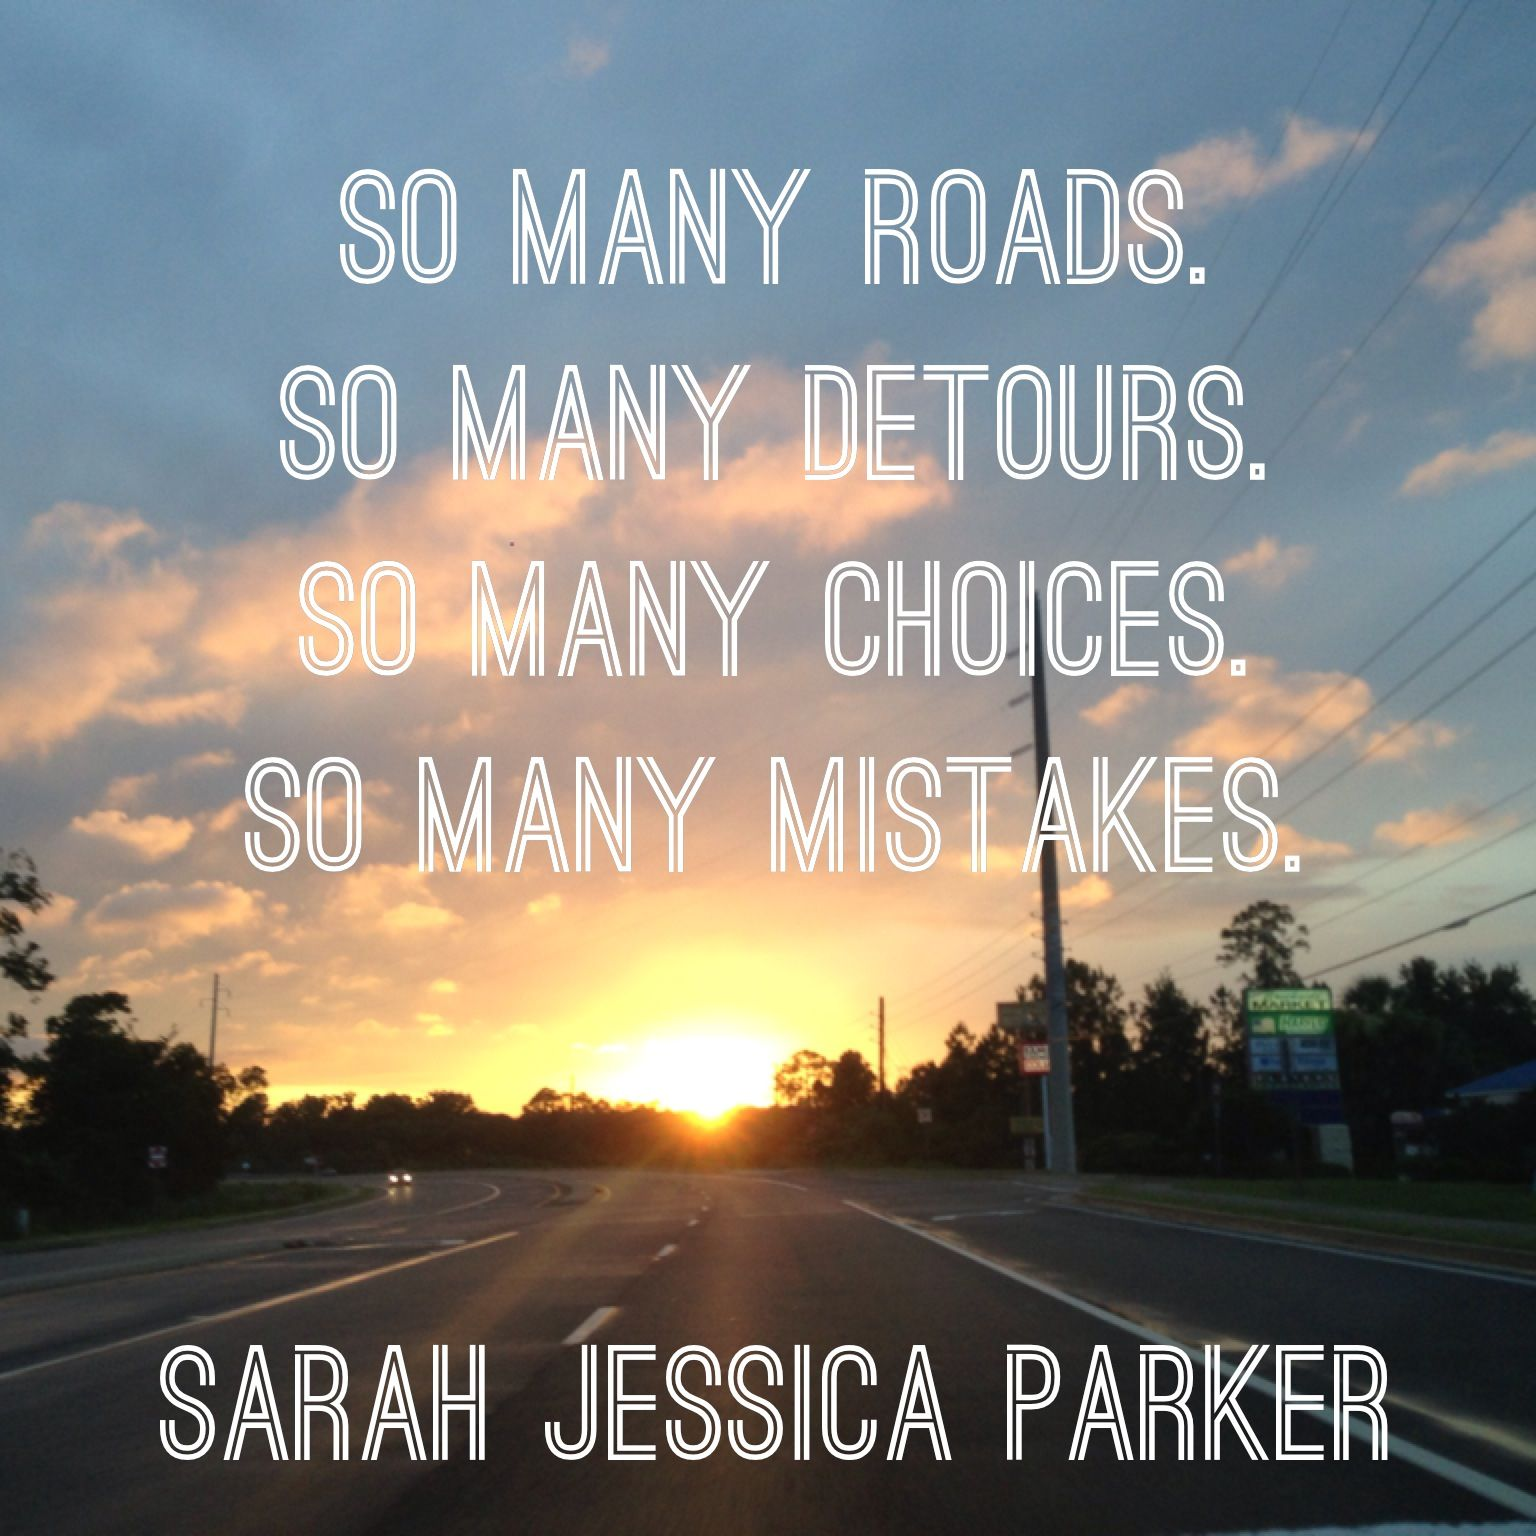 Favorite Quotation Sarah Jessica Parker Quote About Roads  Just Saying Stuff